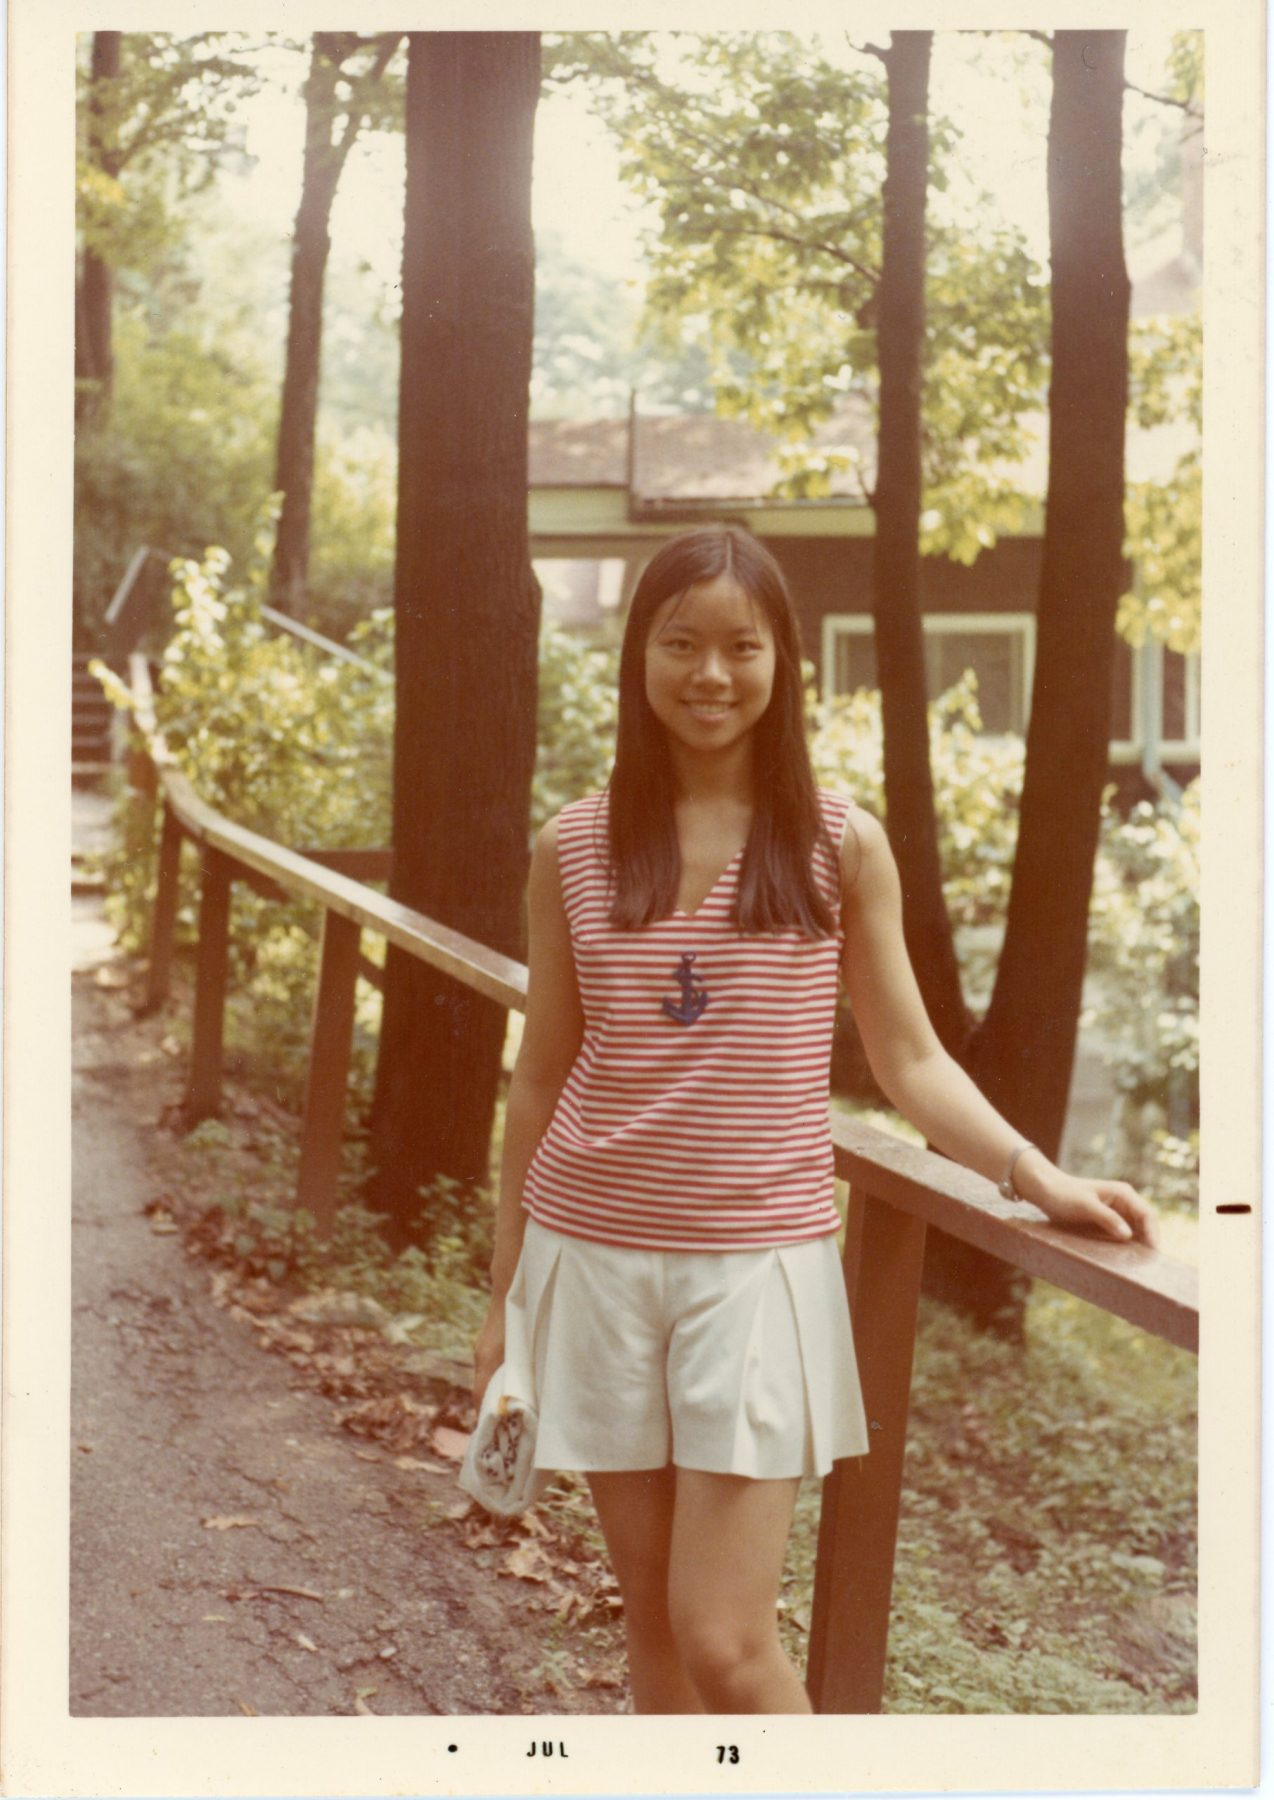 Elaine Chao at age 19, when she got her citizenship.